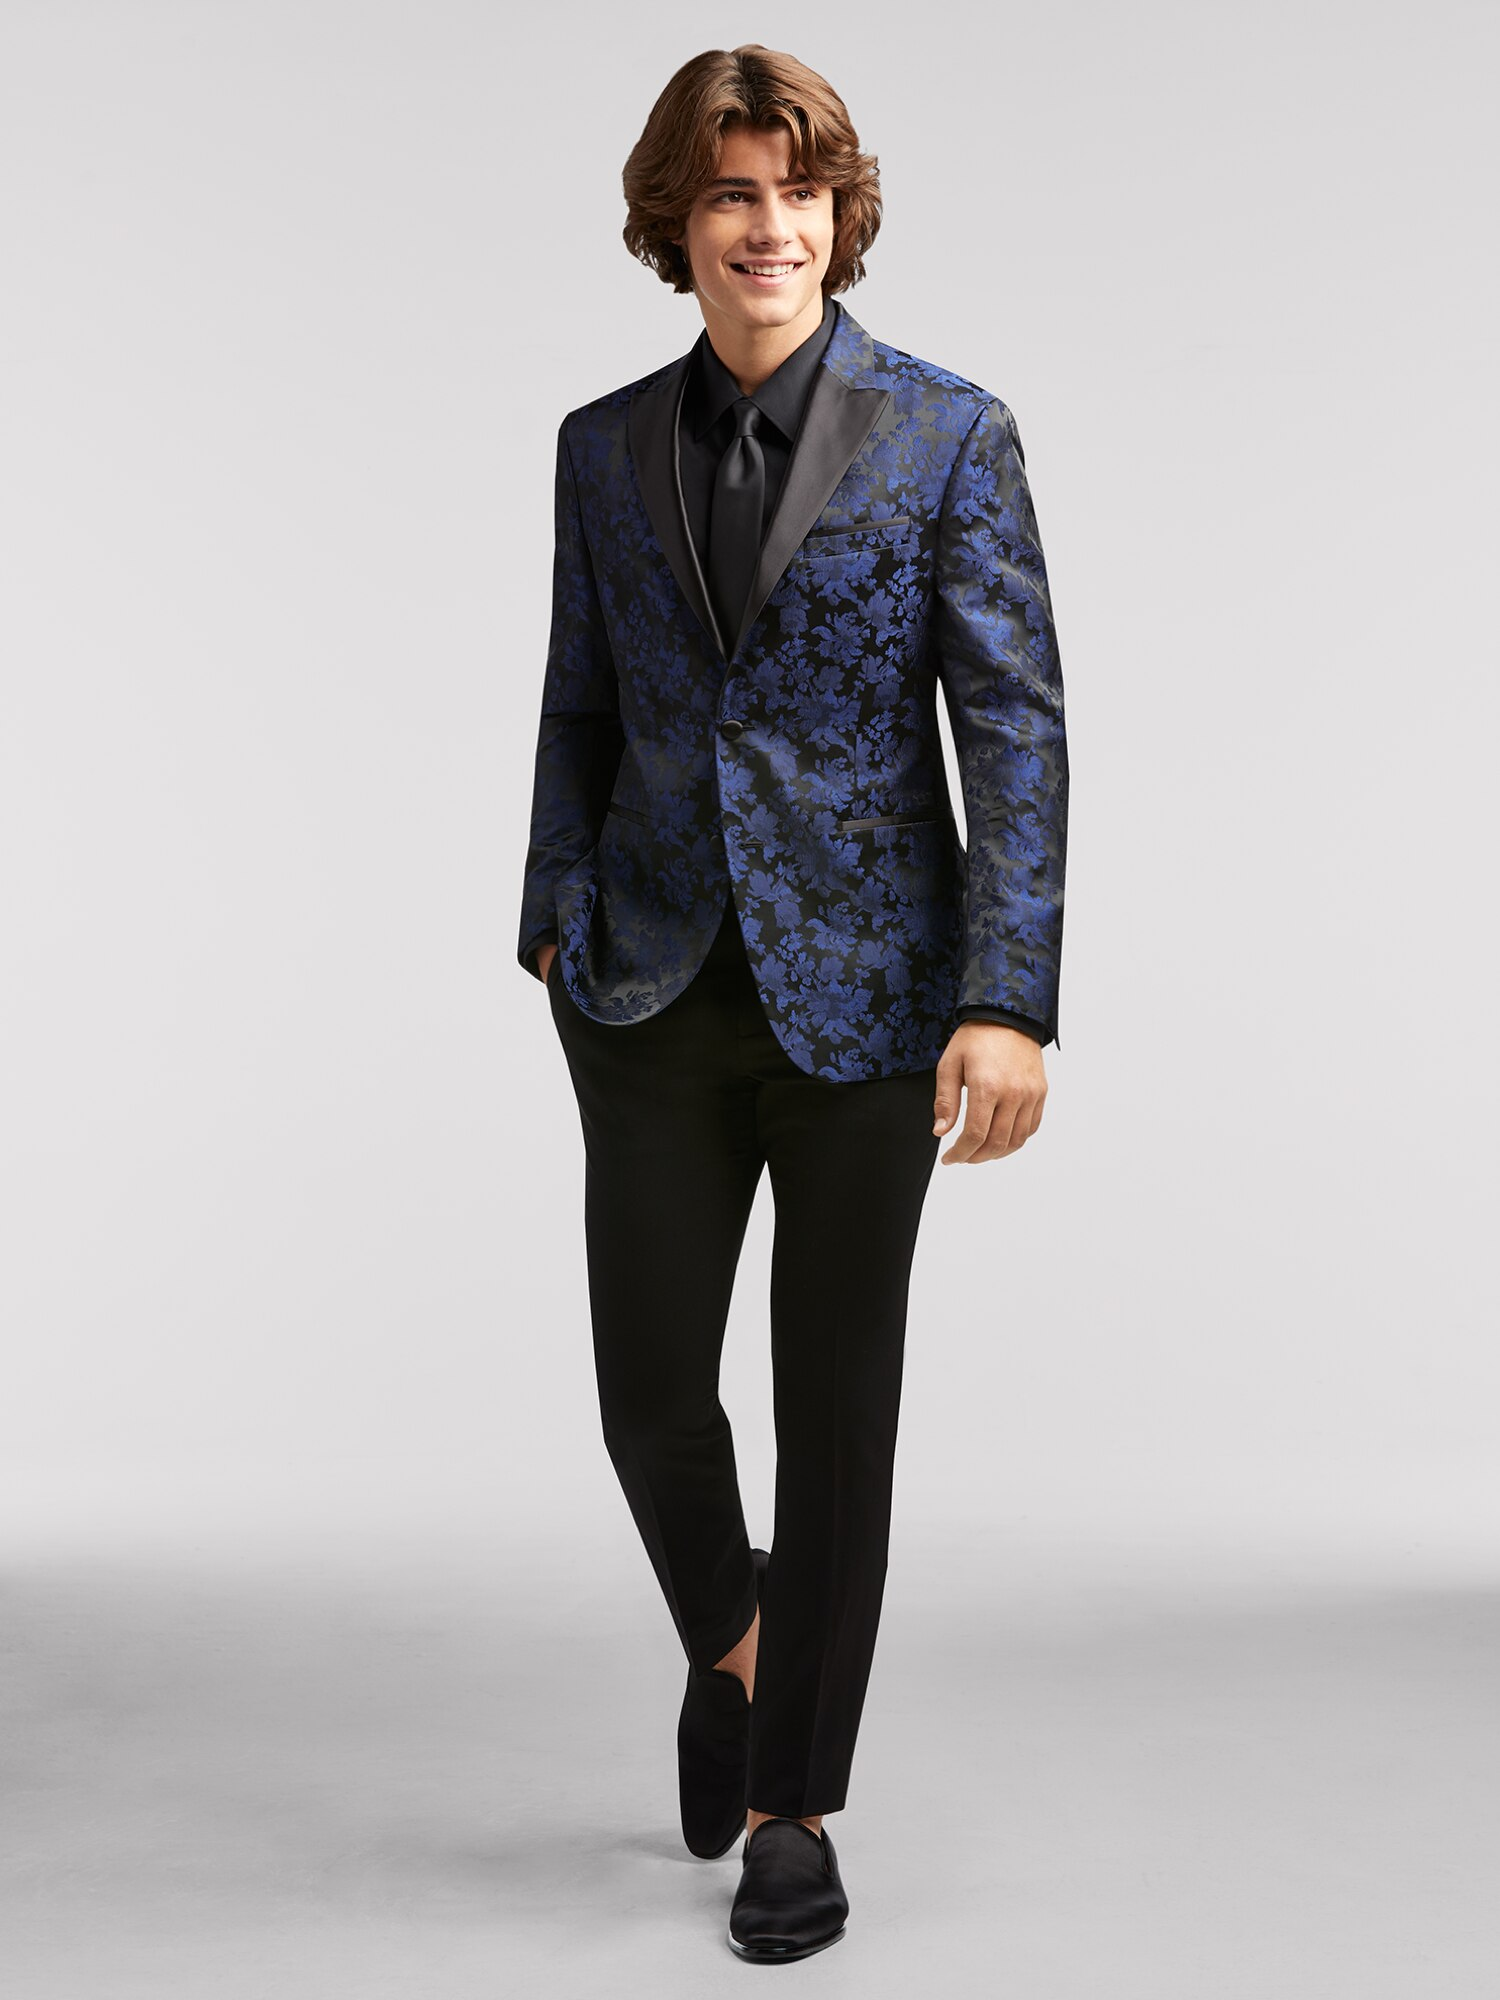 Mens Pre-Styled Looks, Suits - Royal Touch - Men's Wearhouse